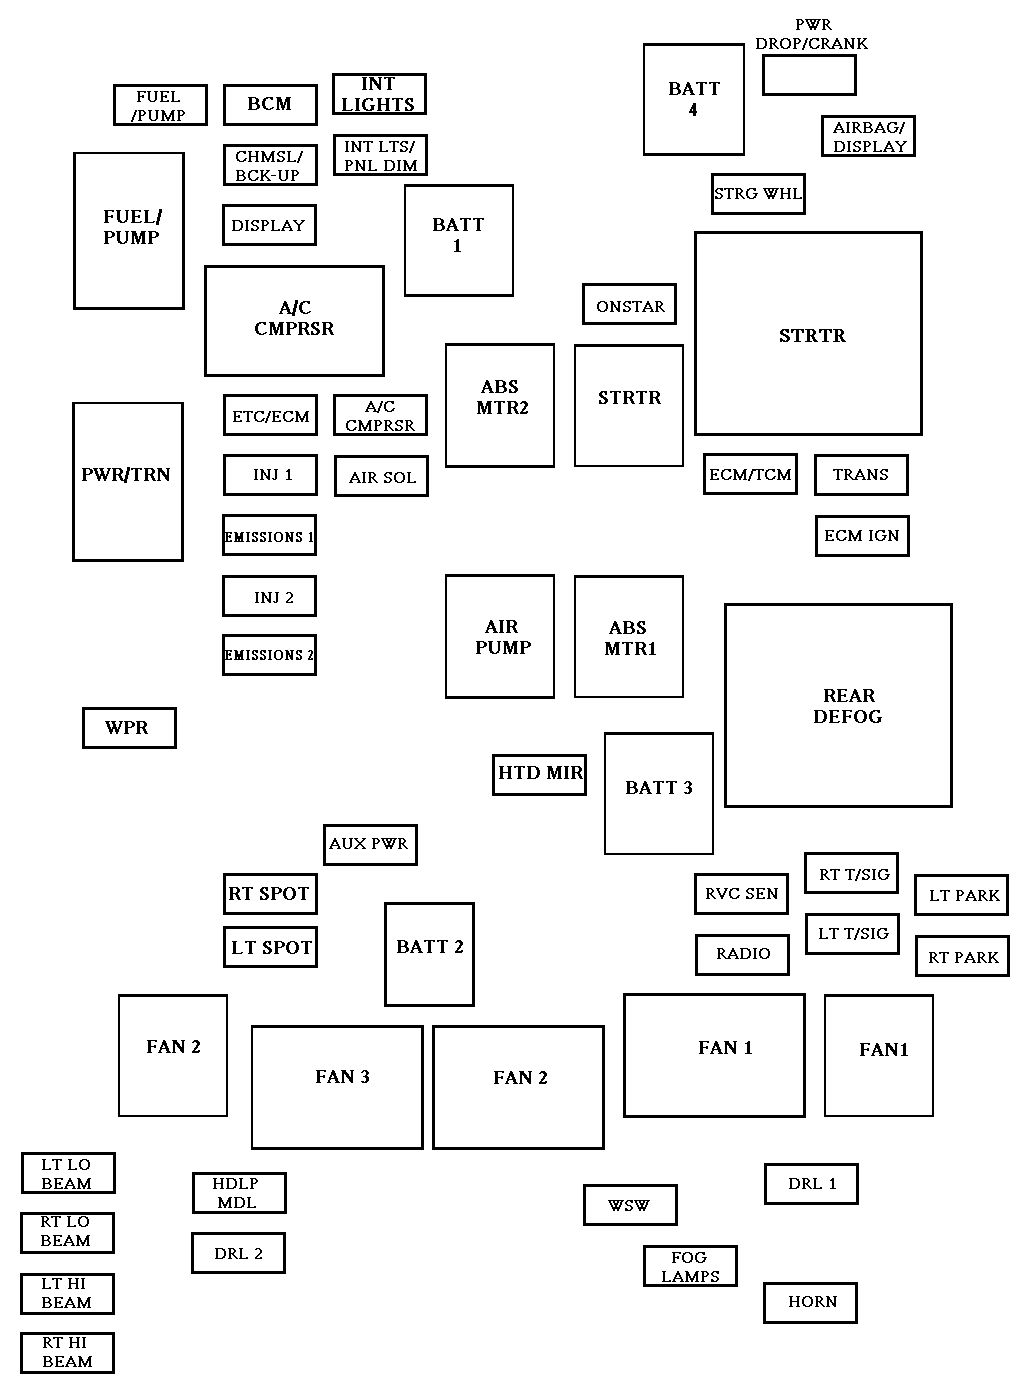 07 impala fuse box diagram wiring diagram sheet07 chevy impala fuse diagram wiring diagram sheet 2007 [ 1025 x 1388 Pixel ]